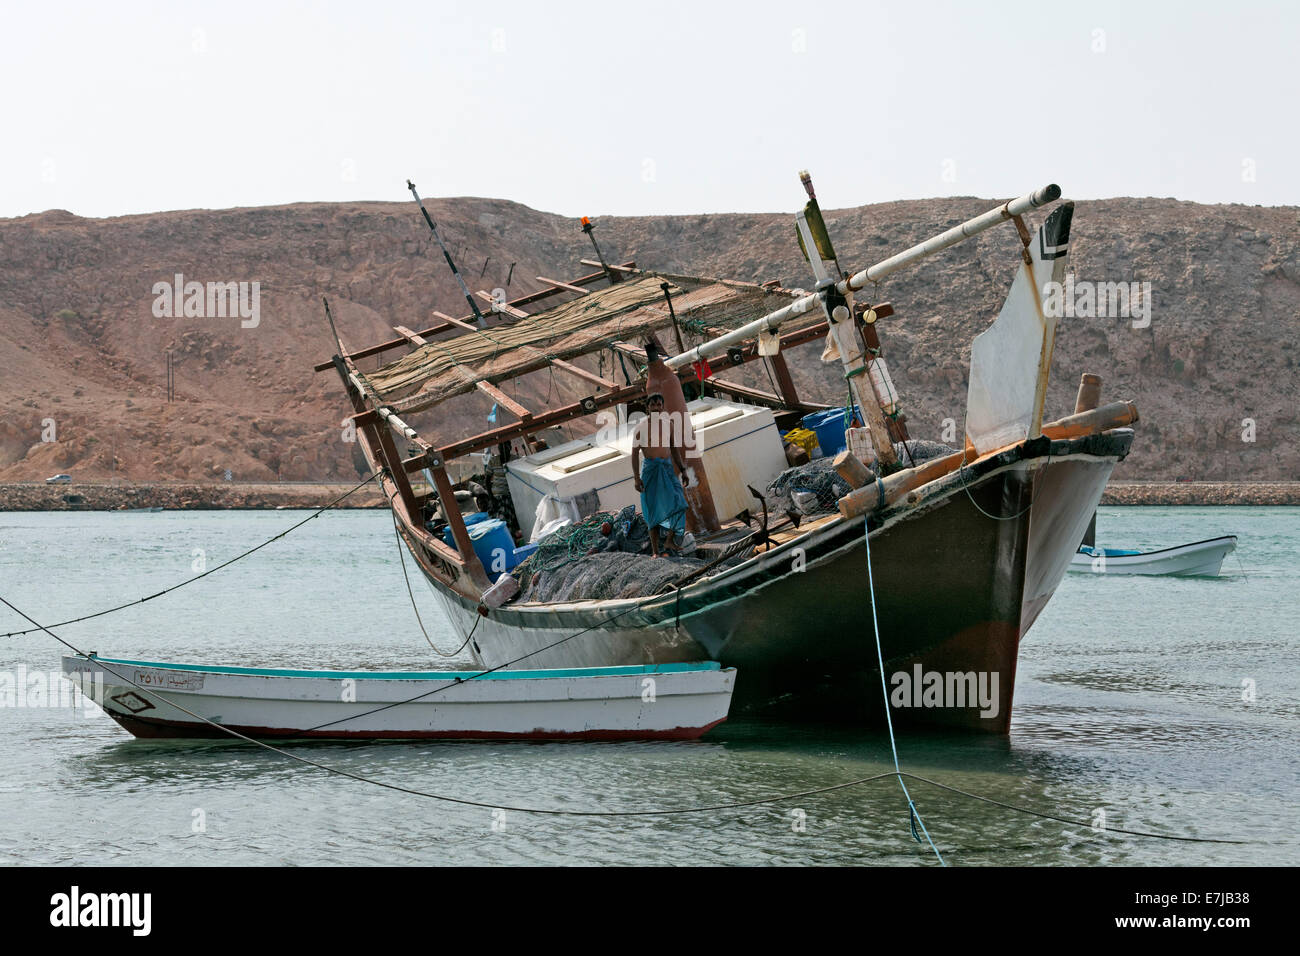 Dhow-ship in the harbour of Sur, Ash Sharqiyah province, Sultanate of Oman, Arabian Peninsula - Stock Image